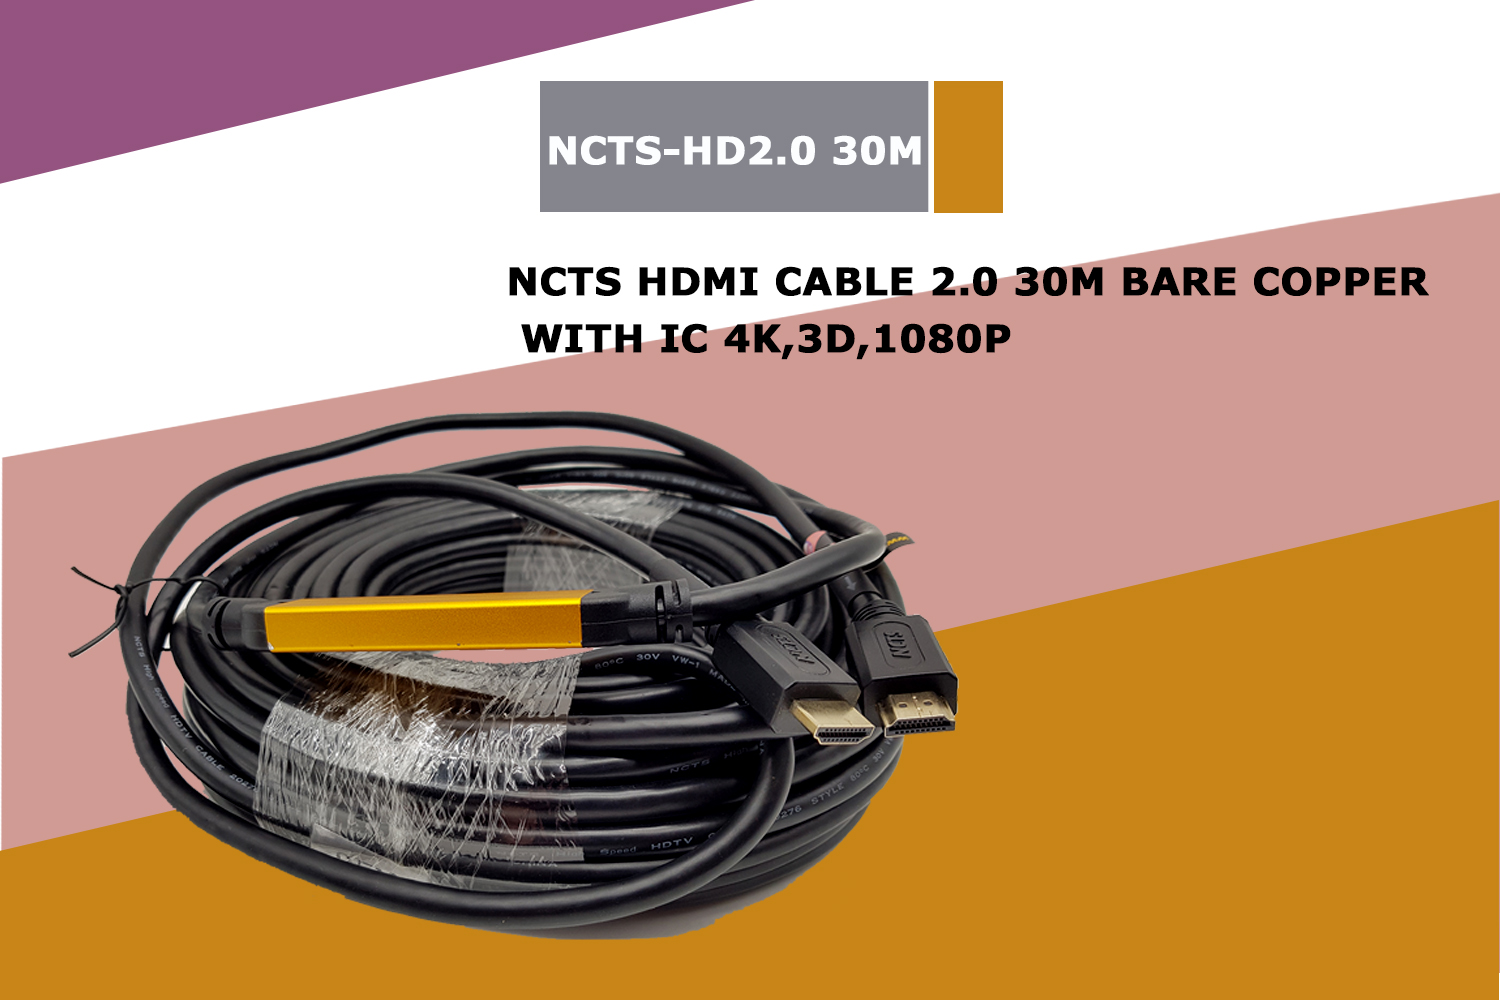 HDMI CABLE 2.0 30M 4K,3D,1080P WITH IC